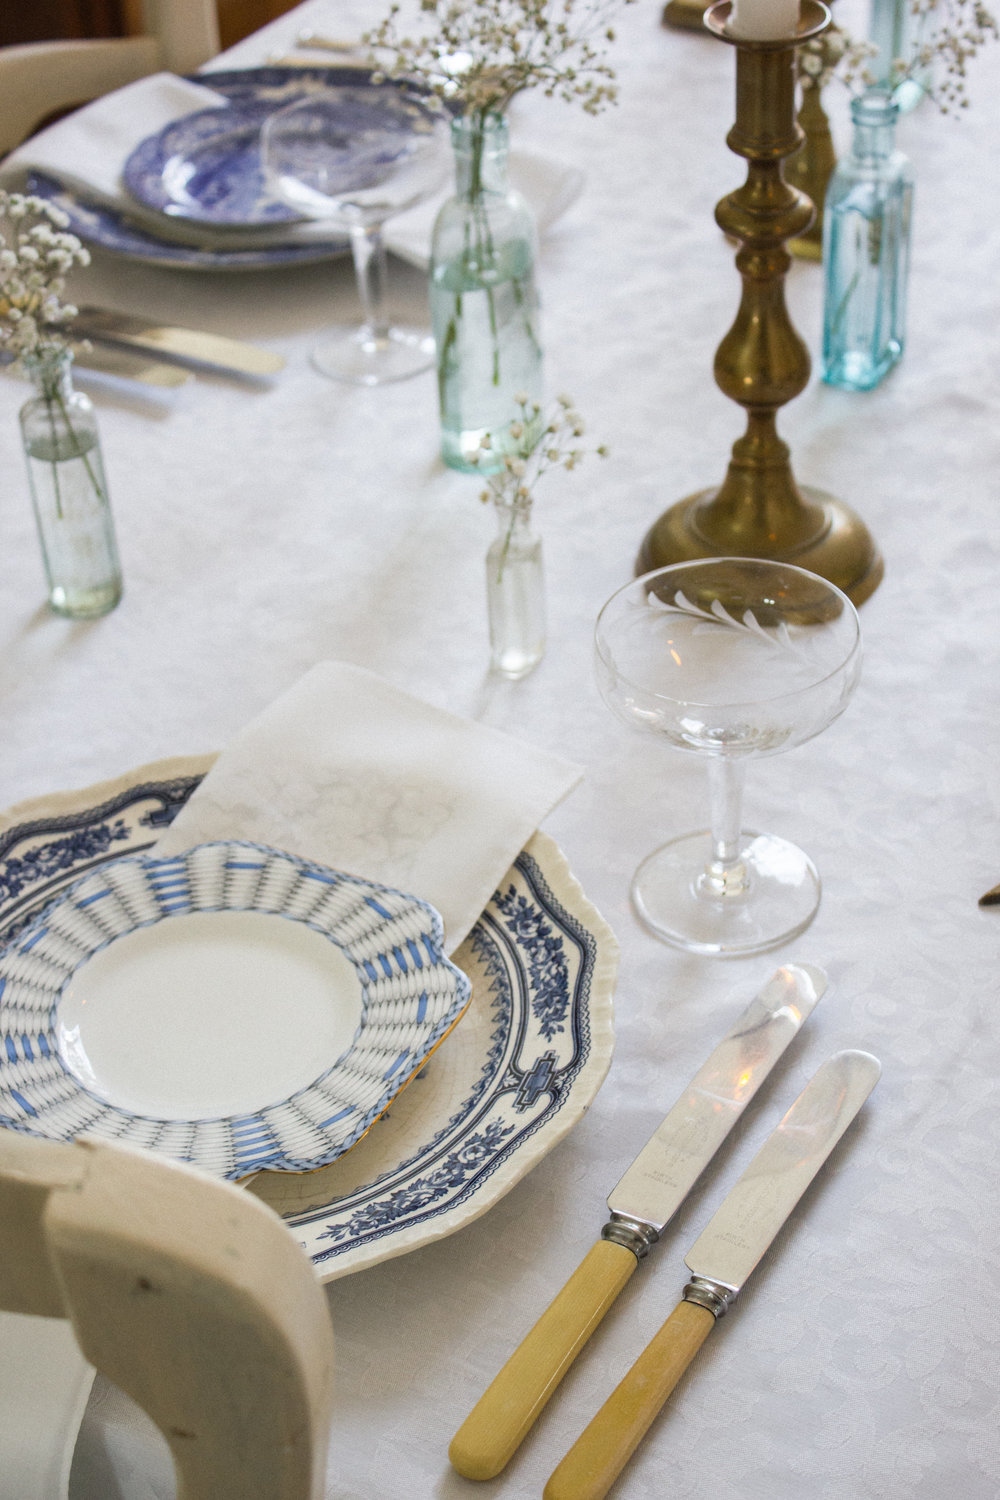 Vintage Amy Styling Tips-Vintage China Hire Kent-Vintage Blue and White Plates